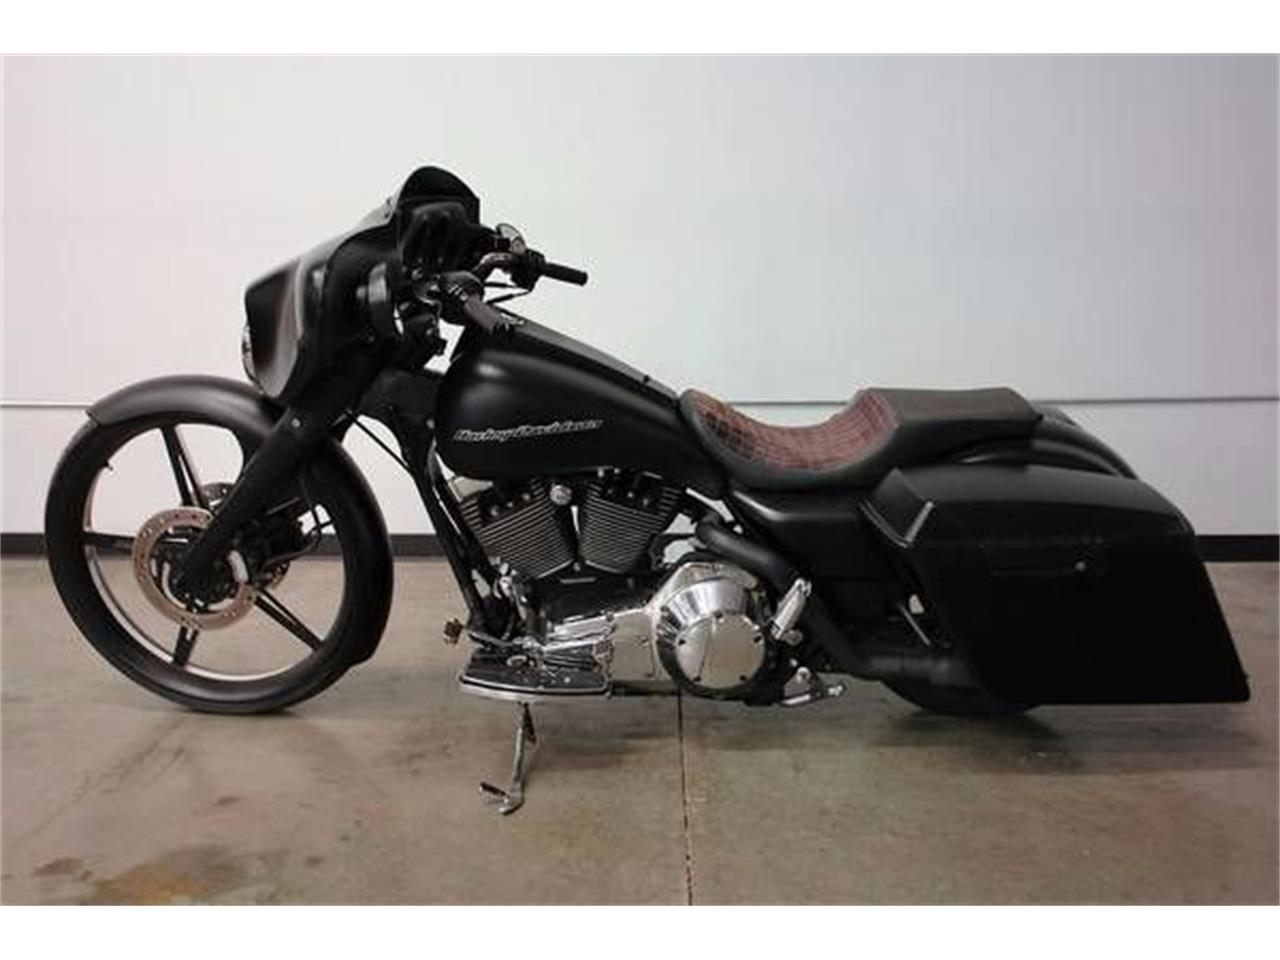 2000 Harley-Davidson Motorcycle for sale in Cadillac, MI